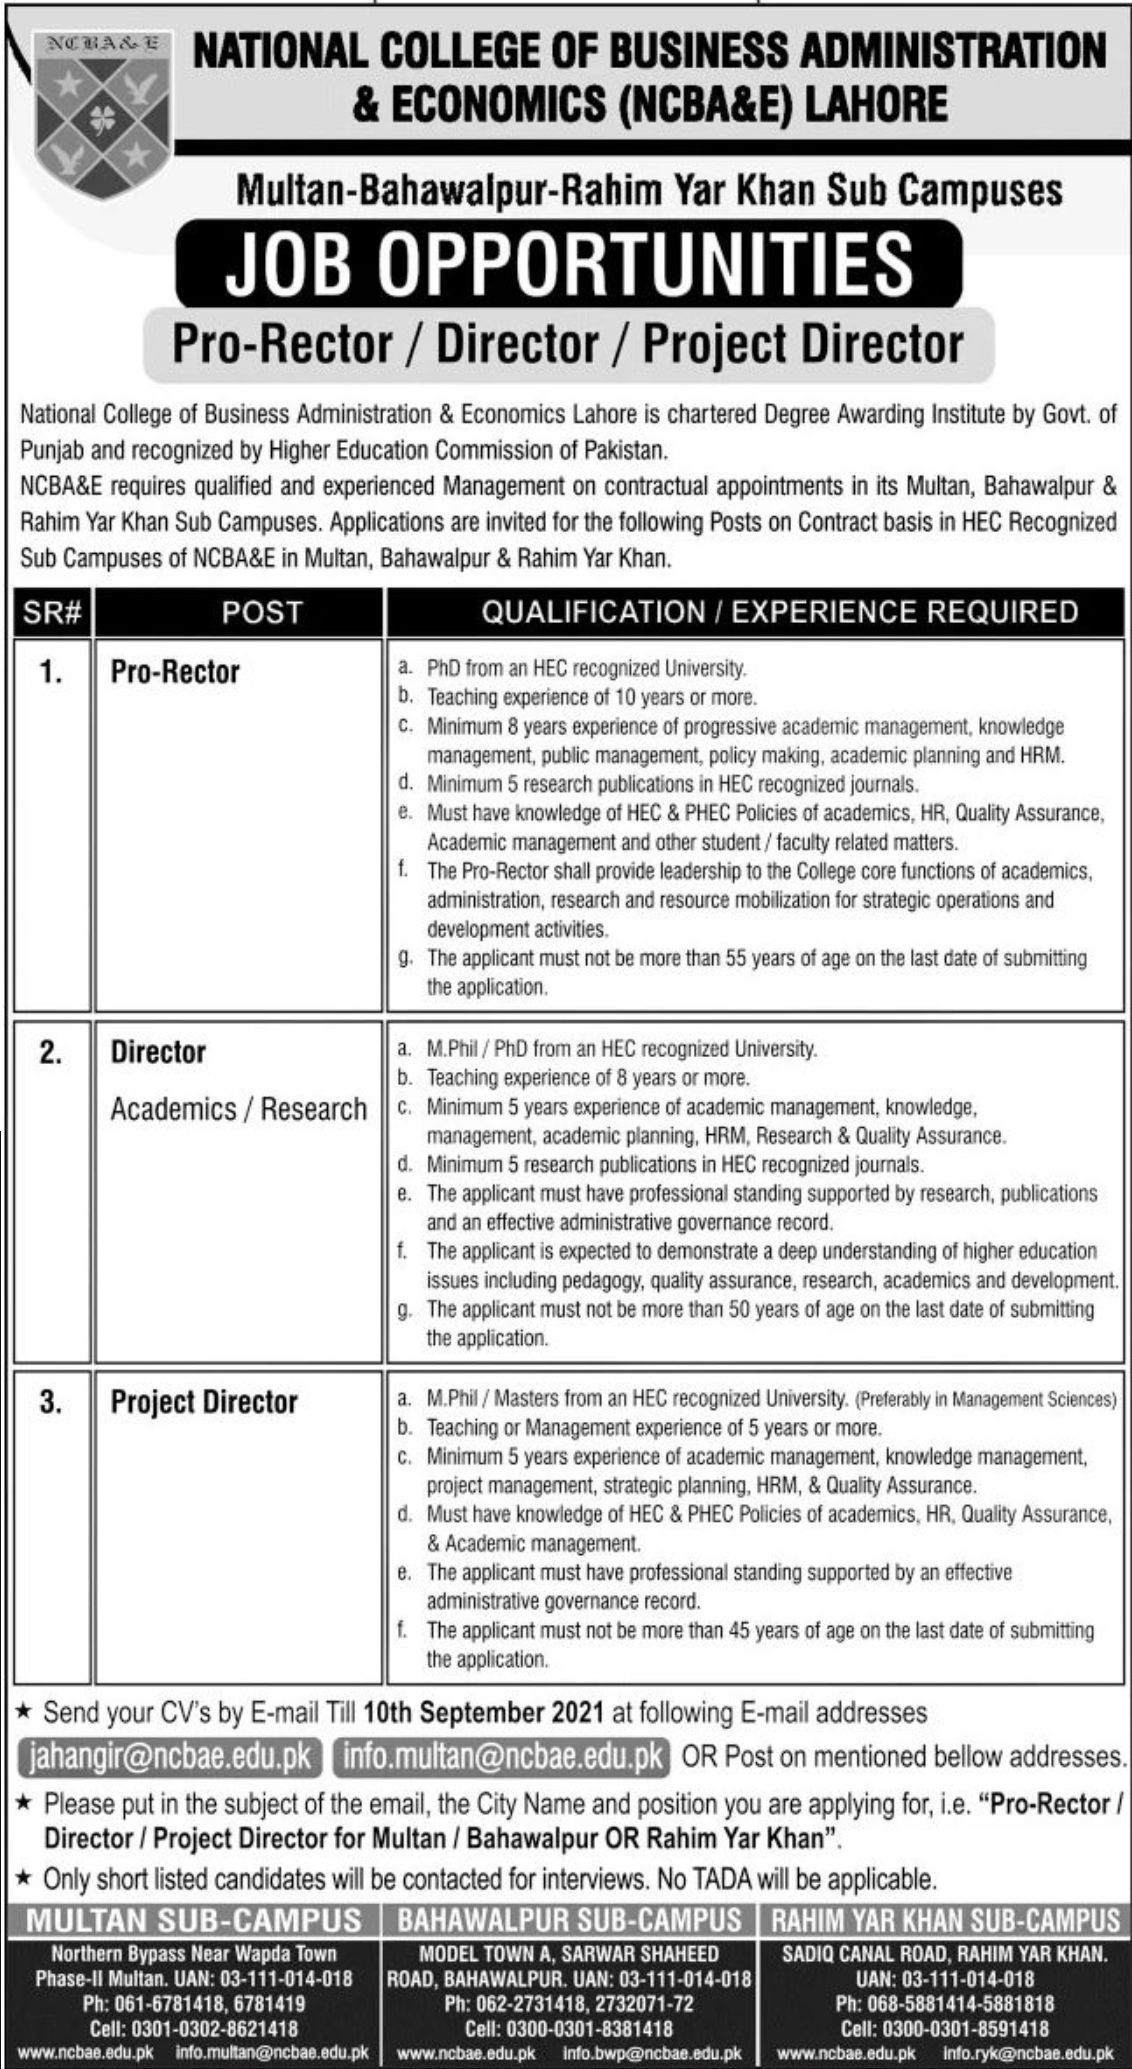 National College of Business Administration & Economics NCBA&E Lahore Vacancies 2021 3